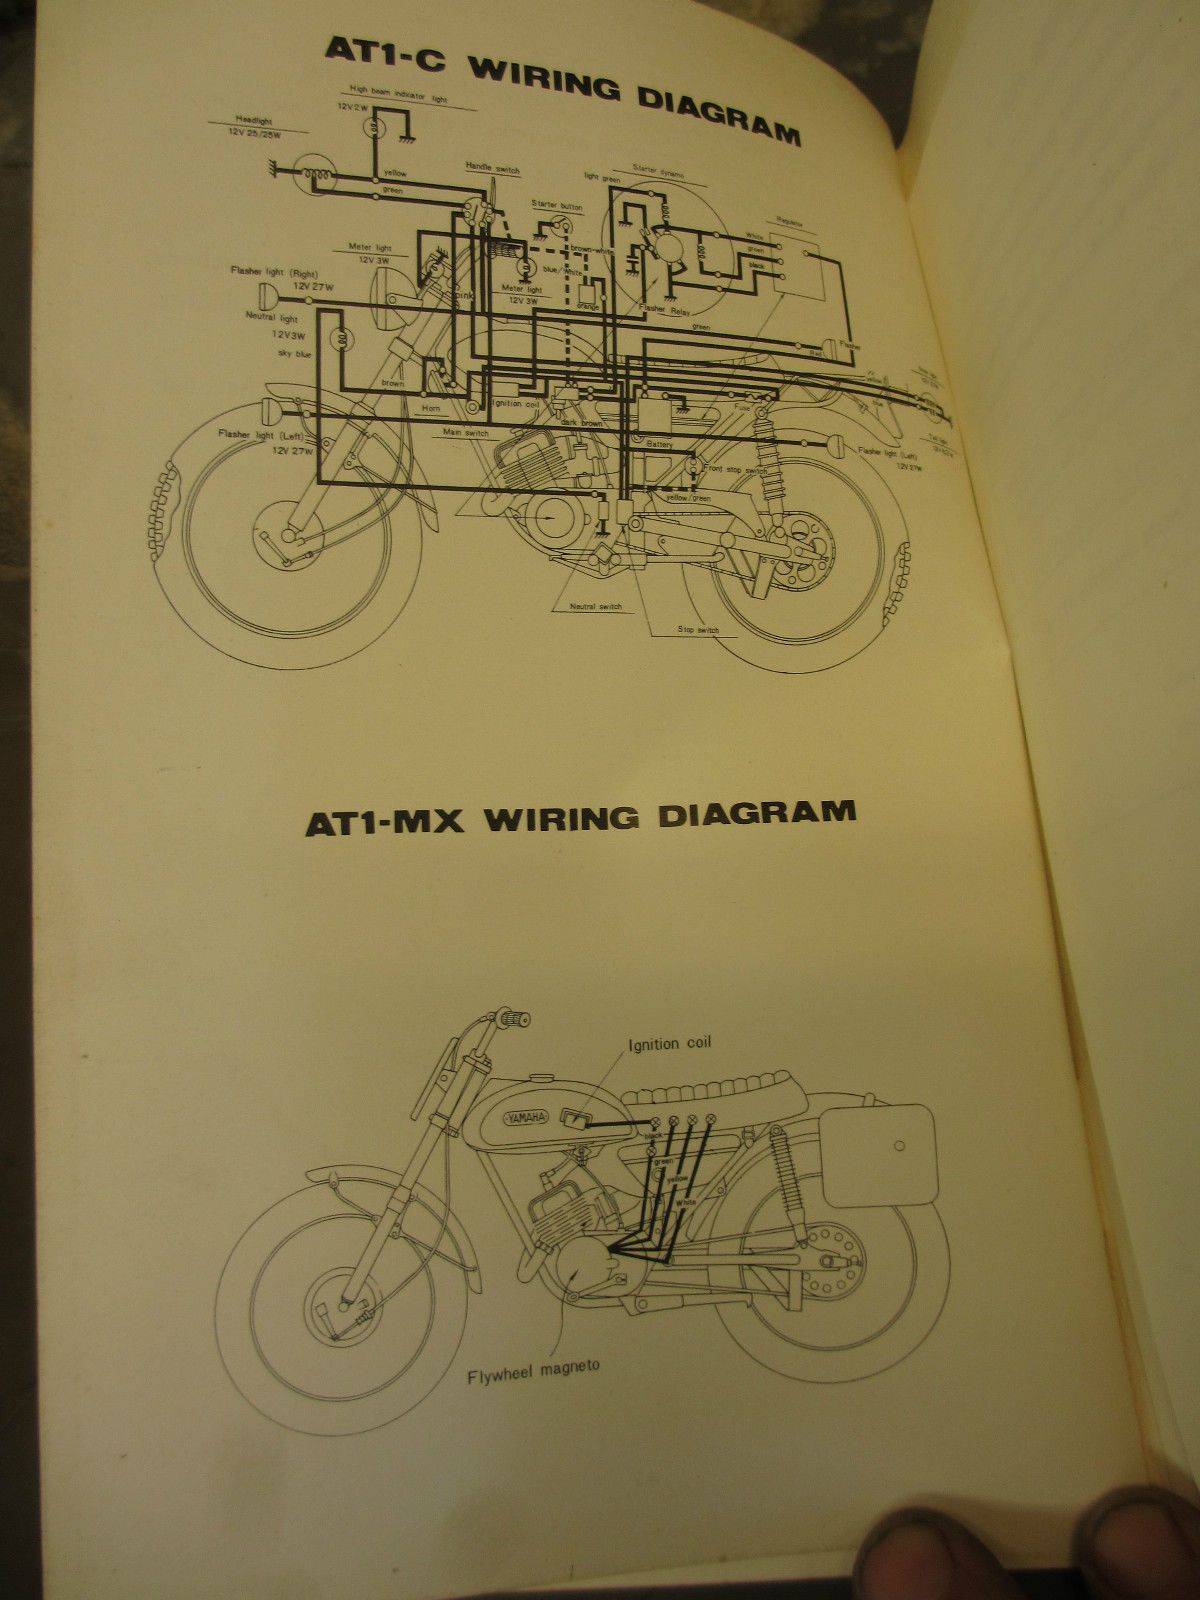 Yamaha Ct1 175 Wiring Diagram Layout Diagrams 1972 1971 At1 Wire Center U2022 Rh 207 246 102 26 1973 Dt Ct Motorcycle